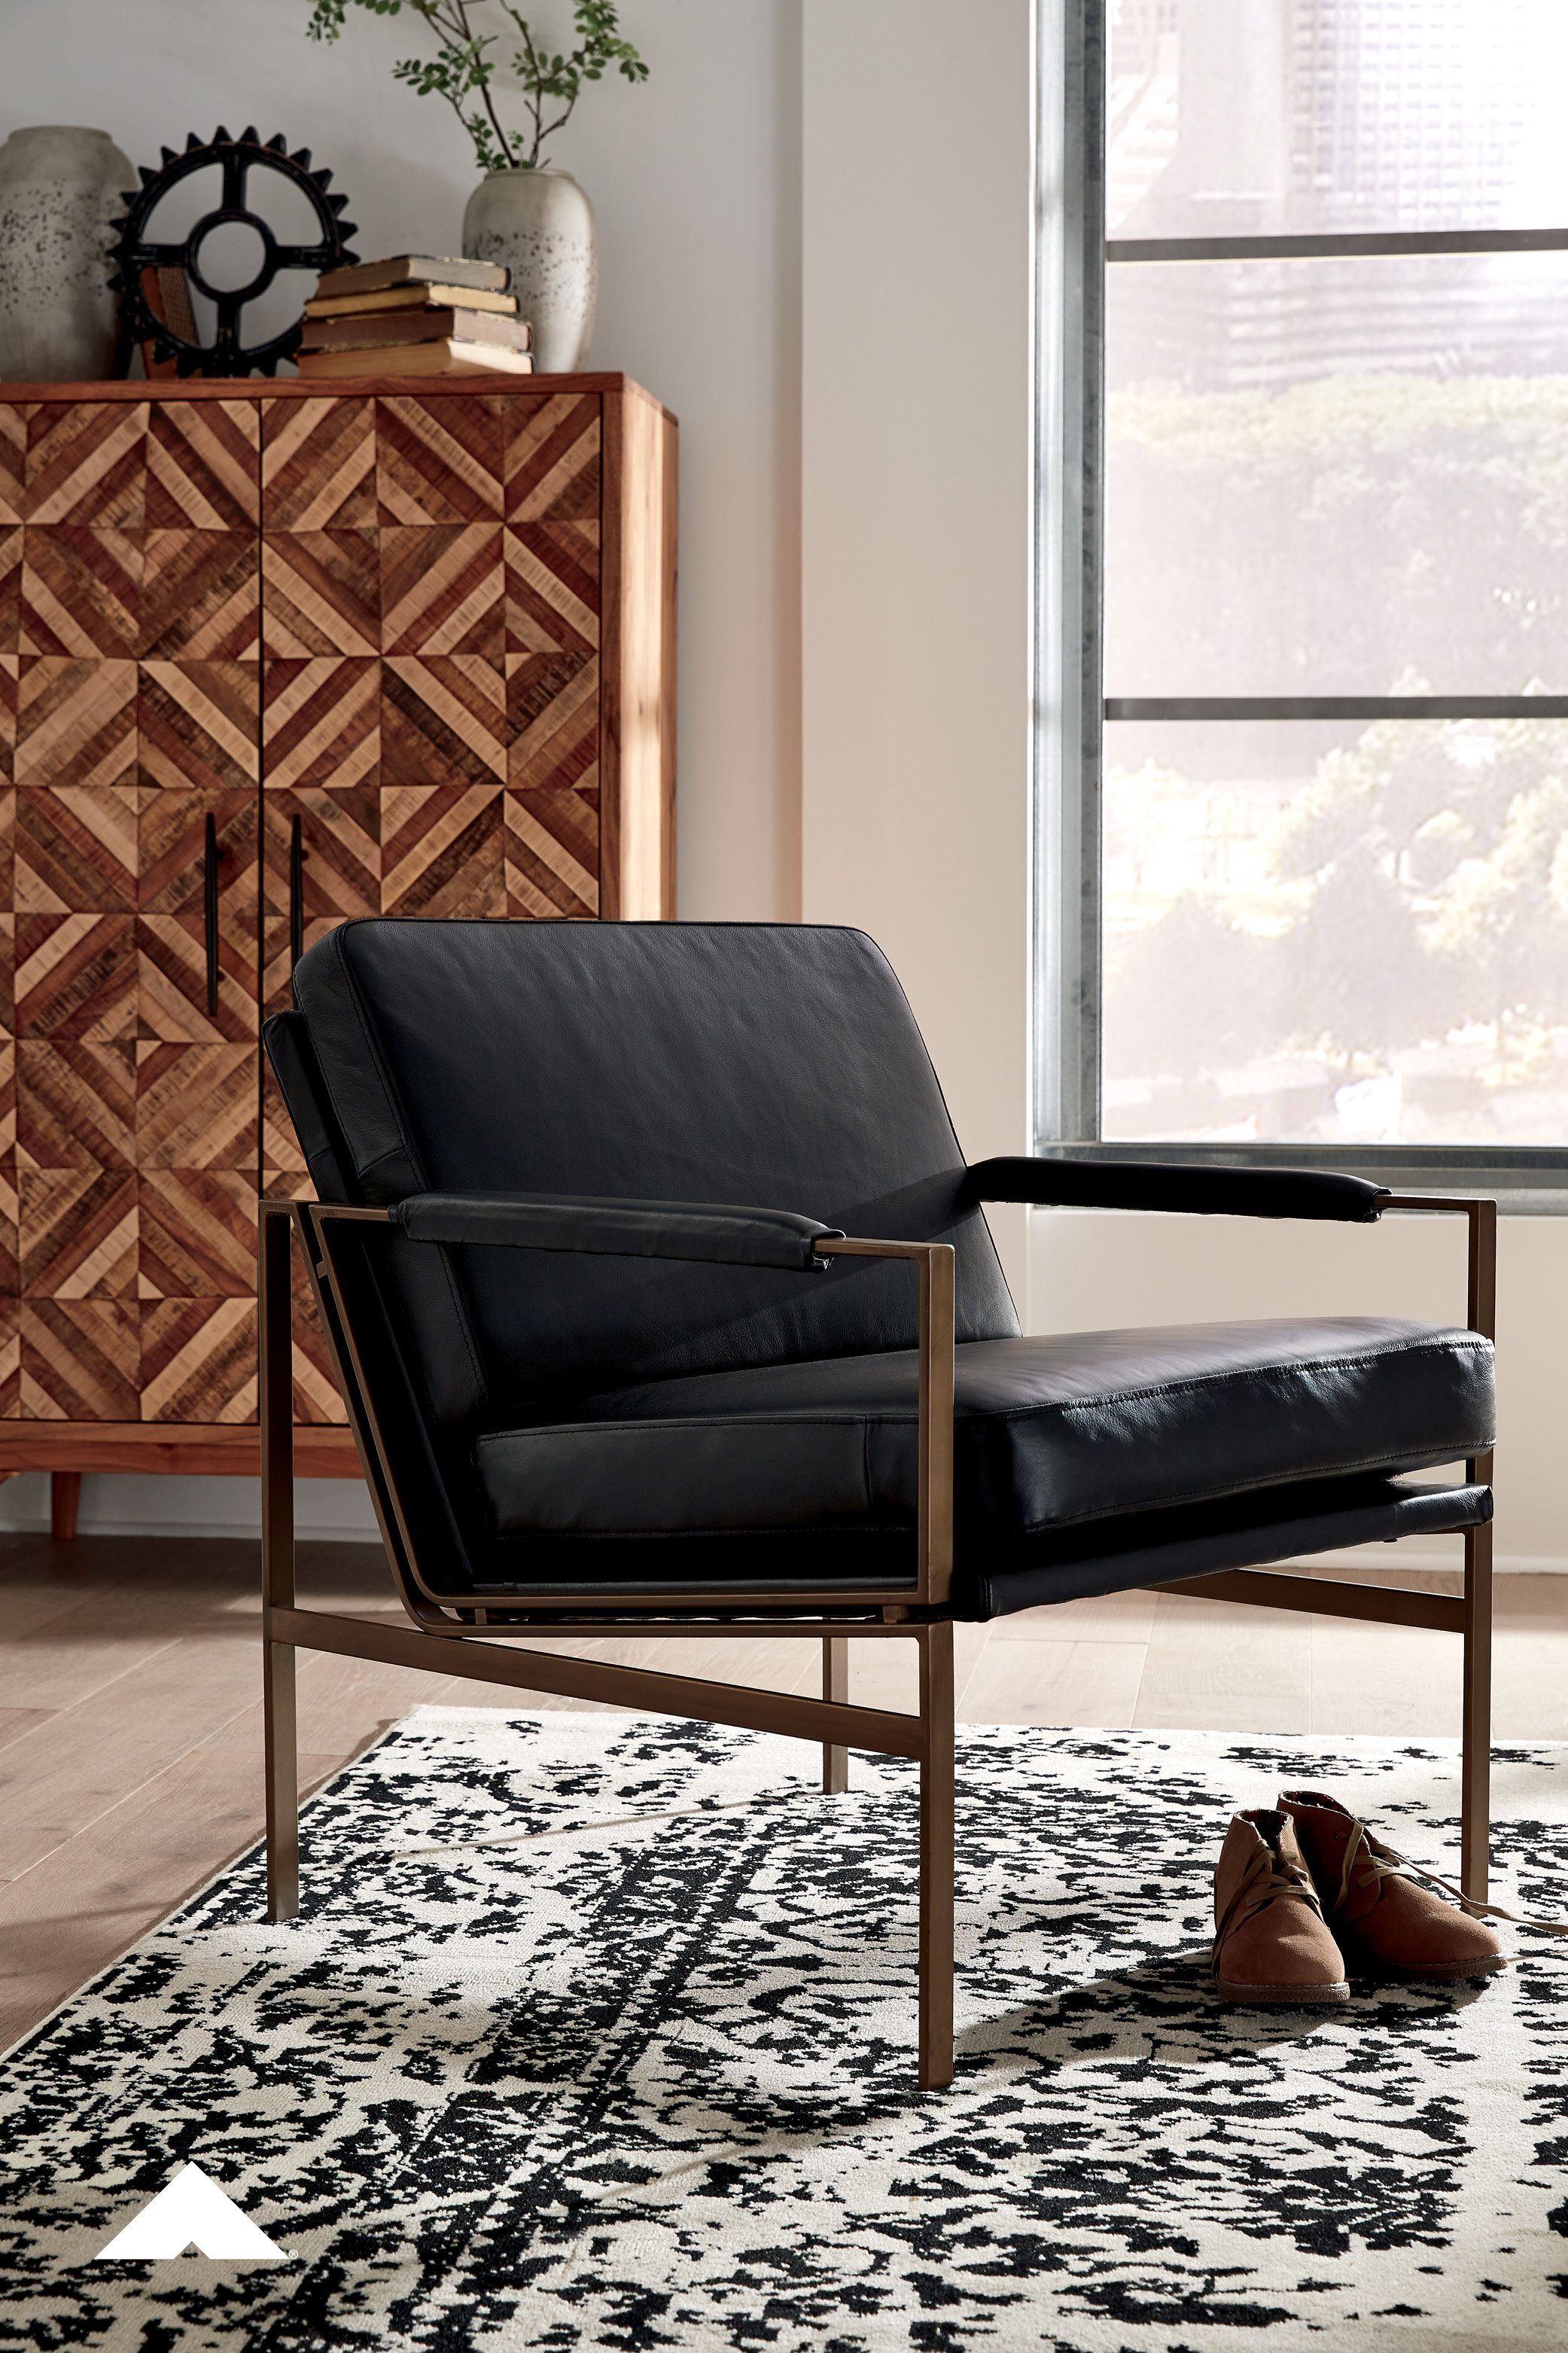 Puckman Black Accent Chair By Ashley Furniture With Its Ultra Modern Vibe And Ultra Indulgent Feel This Ac In 2020 Accent Chairs Black Accent Chair Ashley Furniture